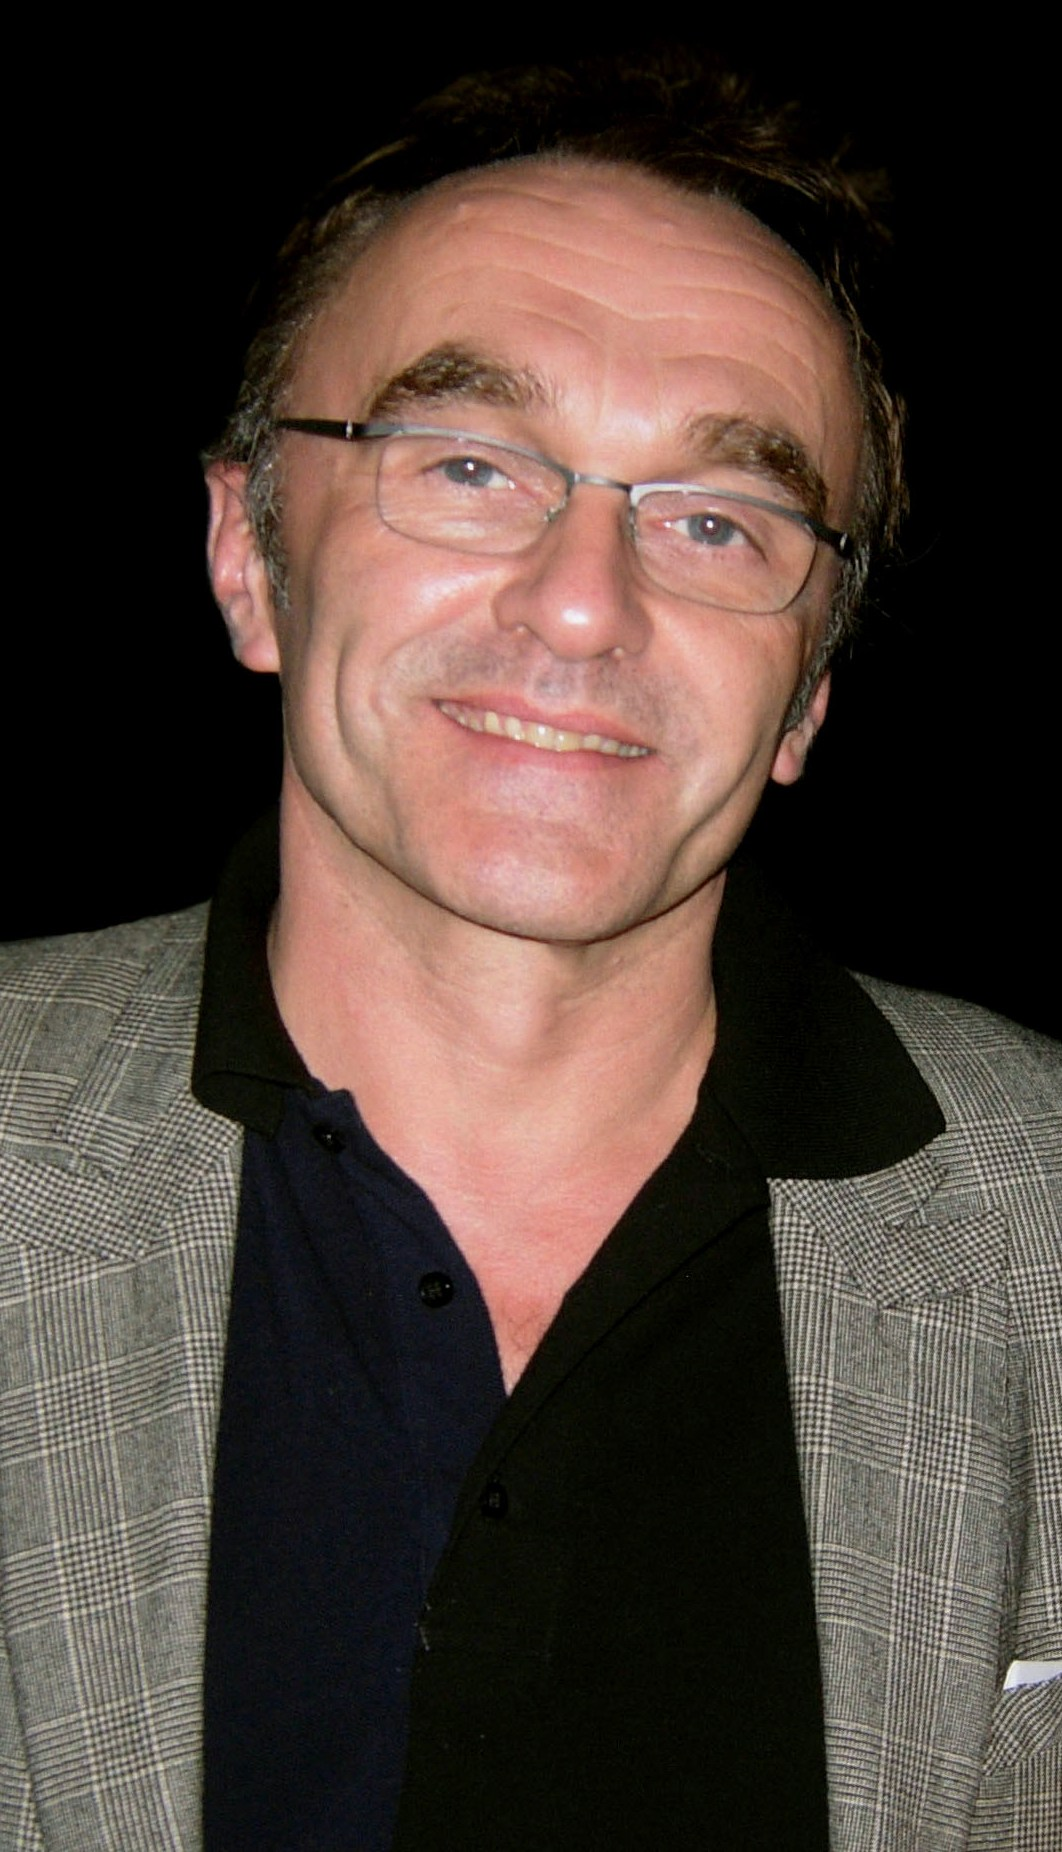 The 60-year old son of father (?) and mother(?), 190 cm tall Danny Boyle in 2017 photo